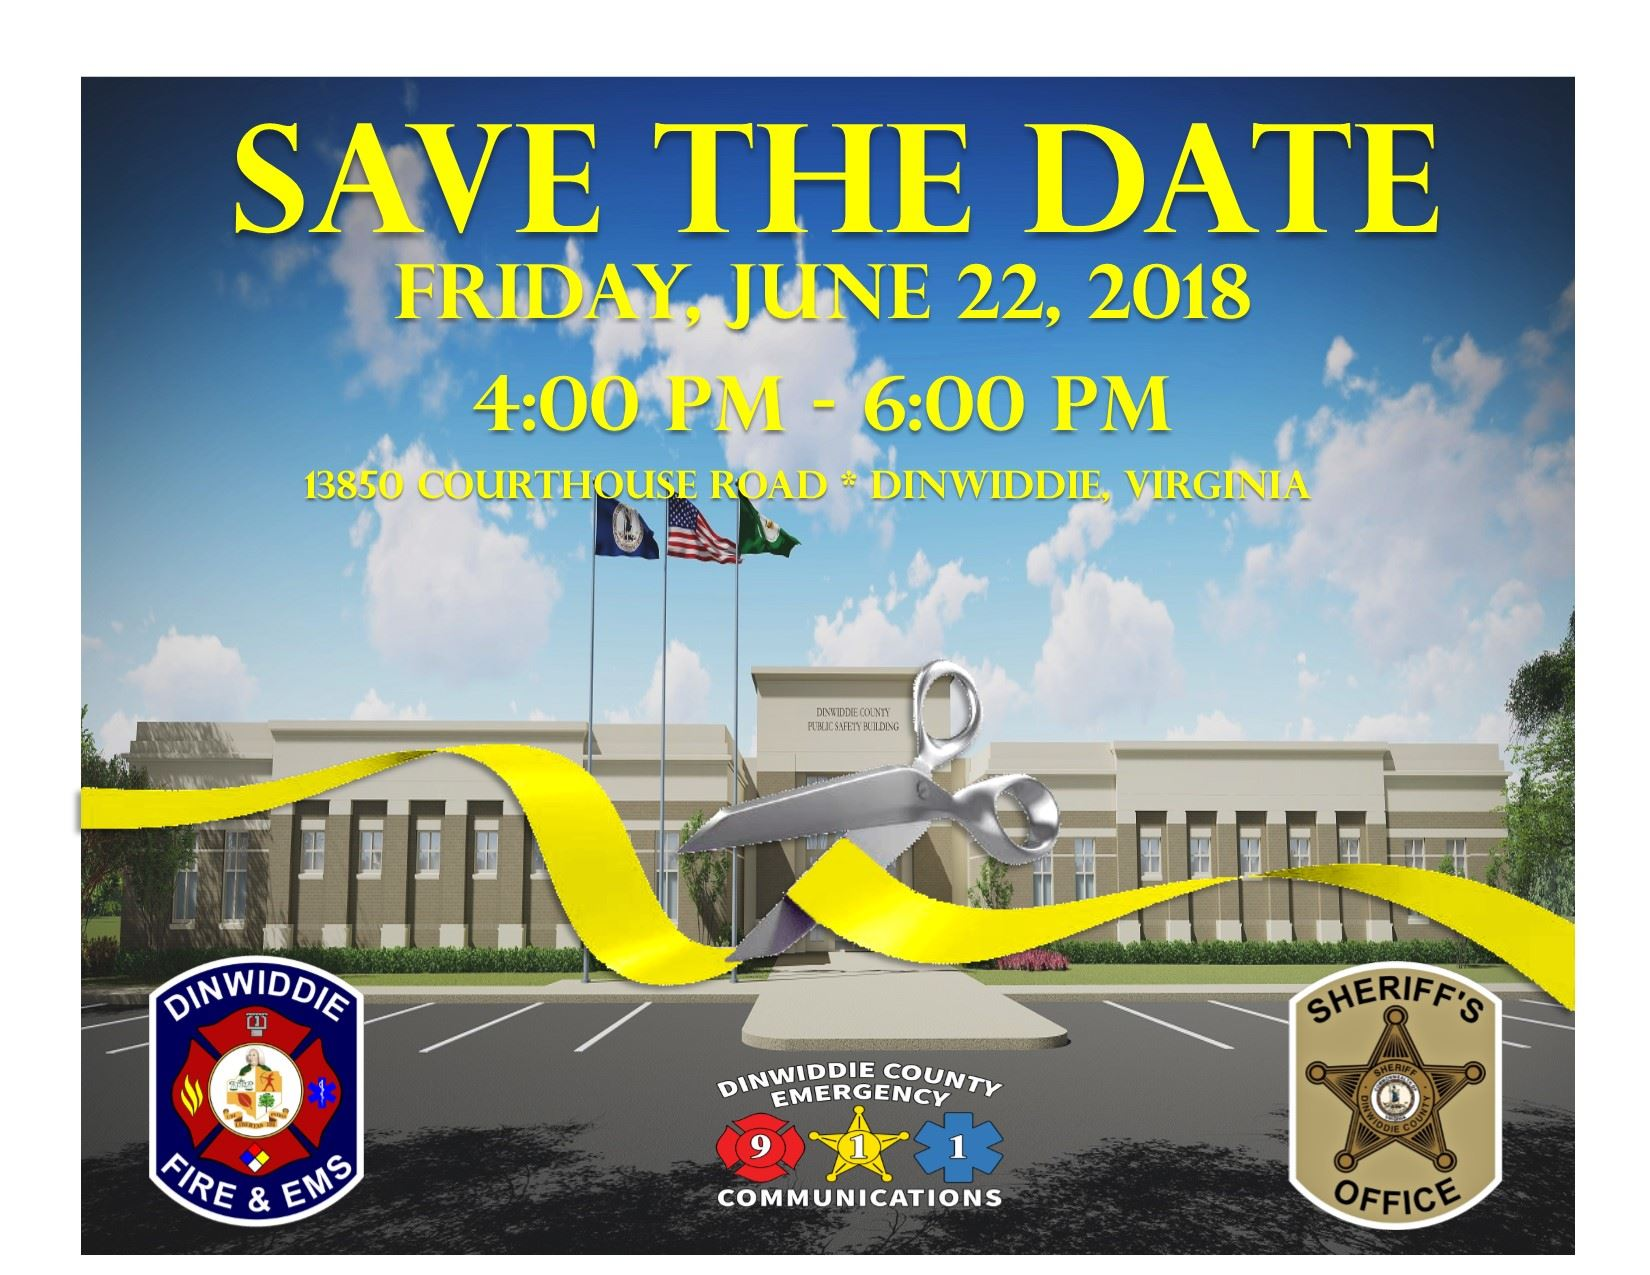 Save the Date - Dinwiddie Count Public Safety Building